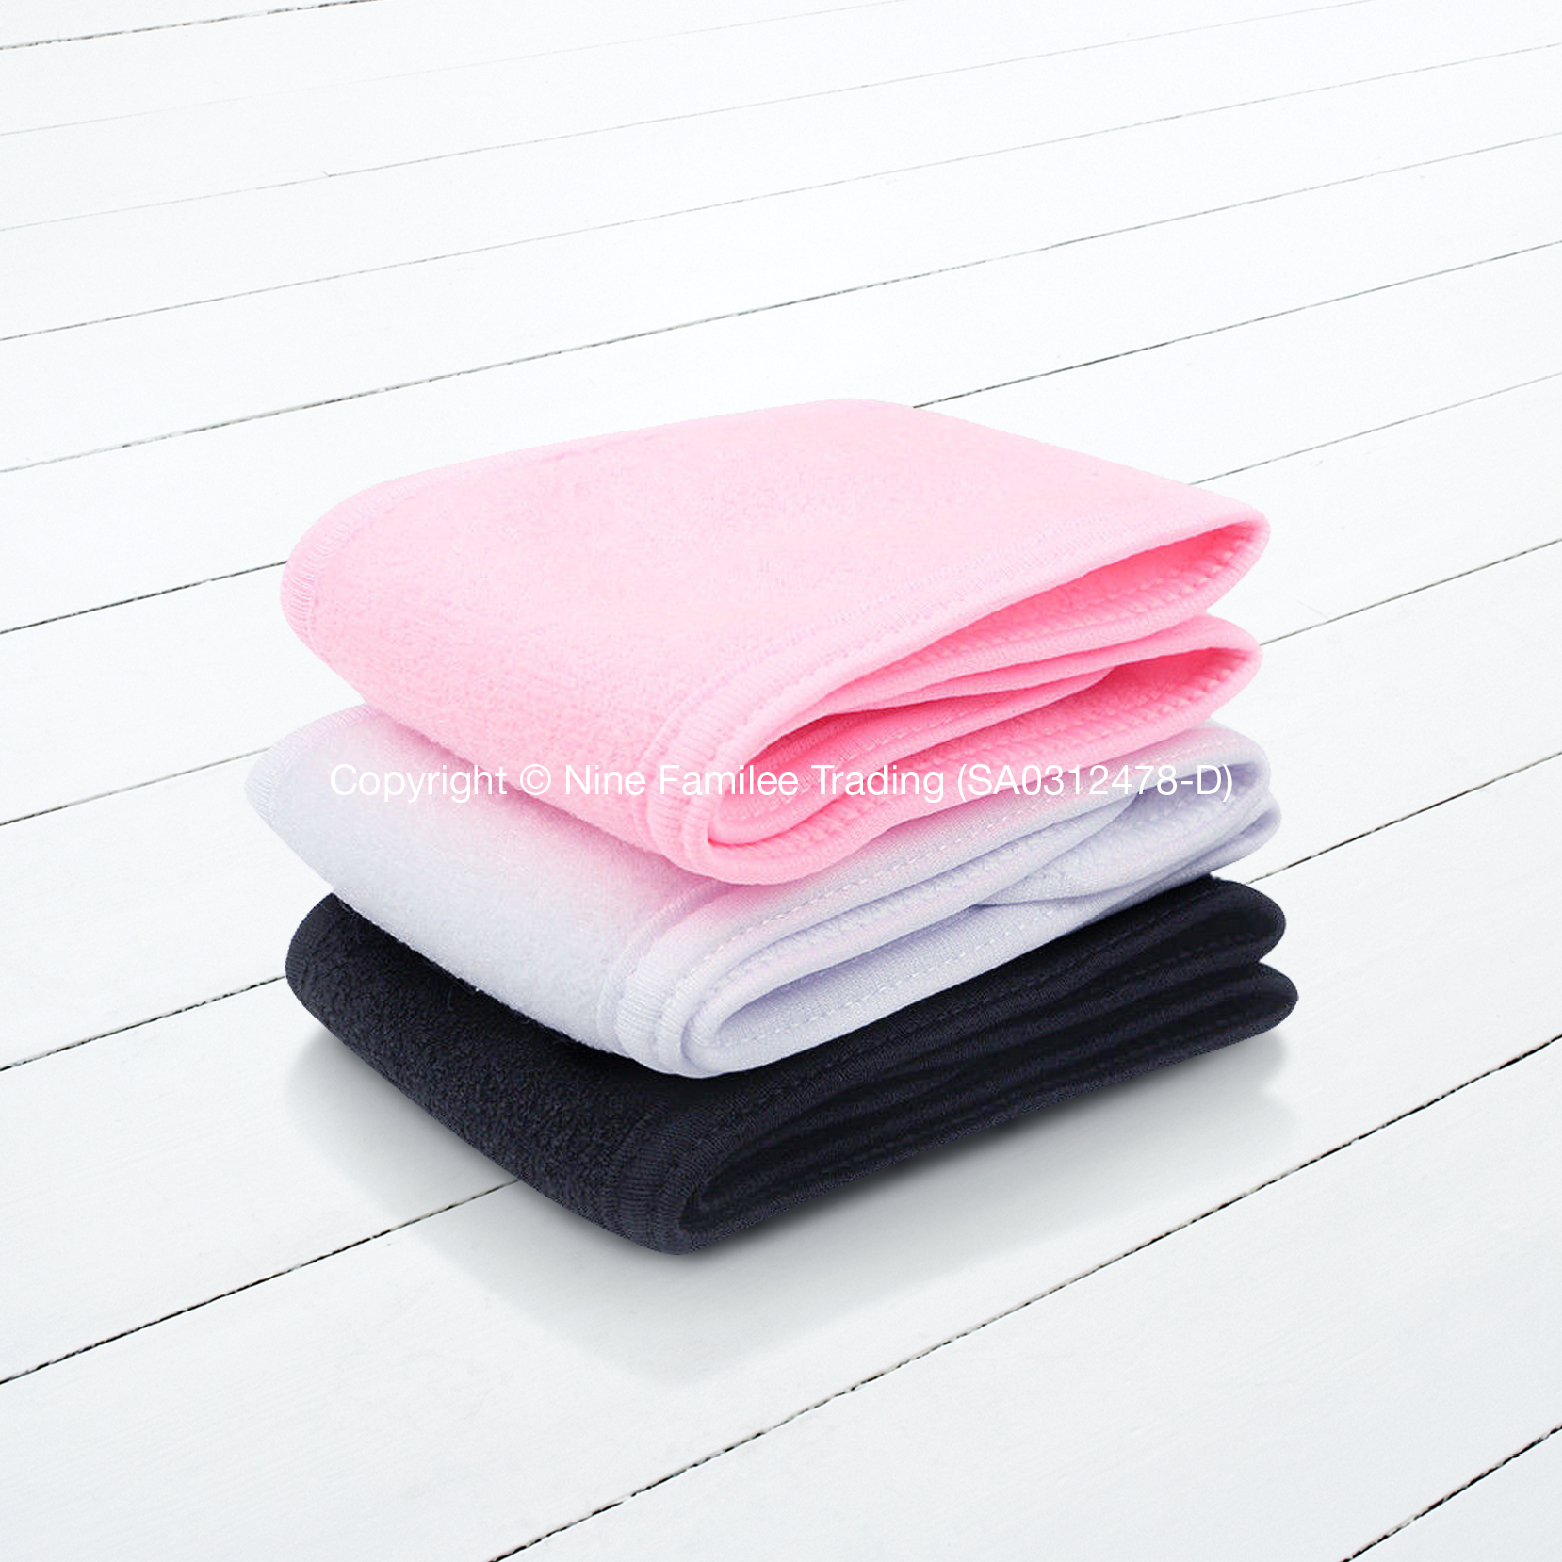 Products - Microfiber Sport Towel-01.jpg